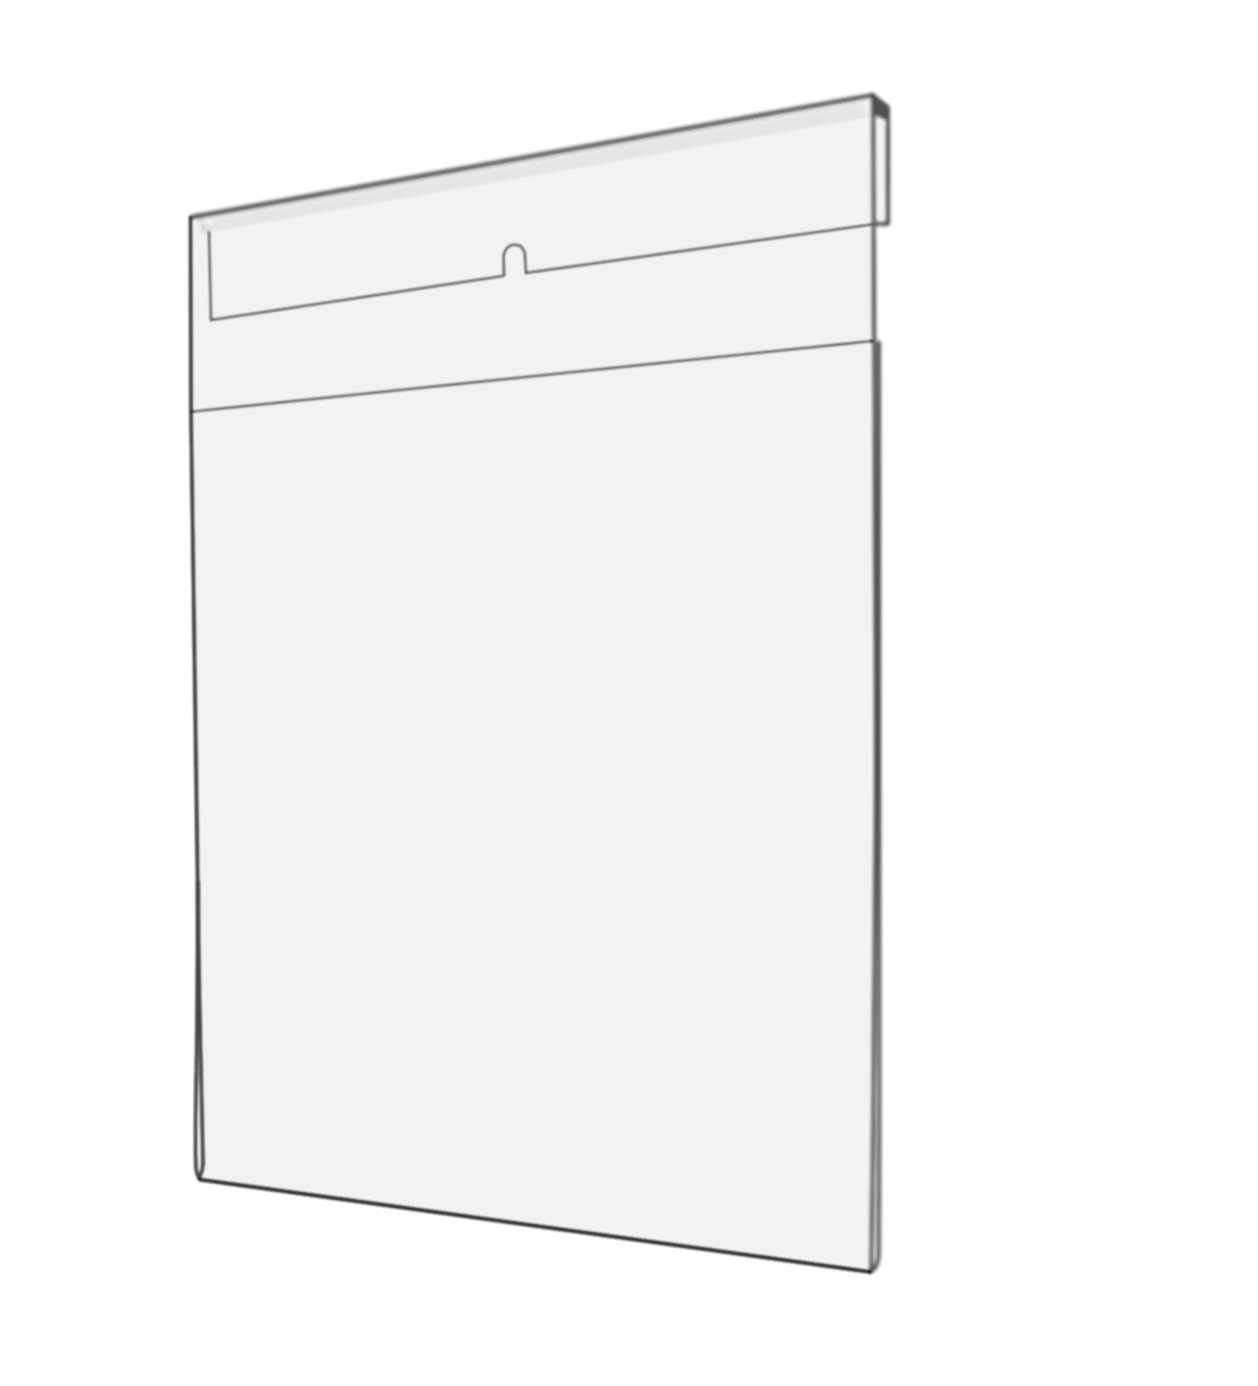 Marketing Holders Wall Mount Adhesive Literature Menu Poster Advertisement Flyer Frame Sign Display 8.5''w x 11''h Pack of 6 by Marketing Holders